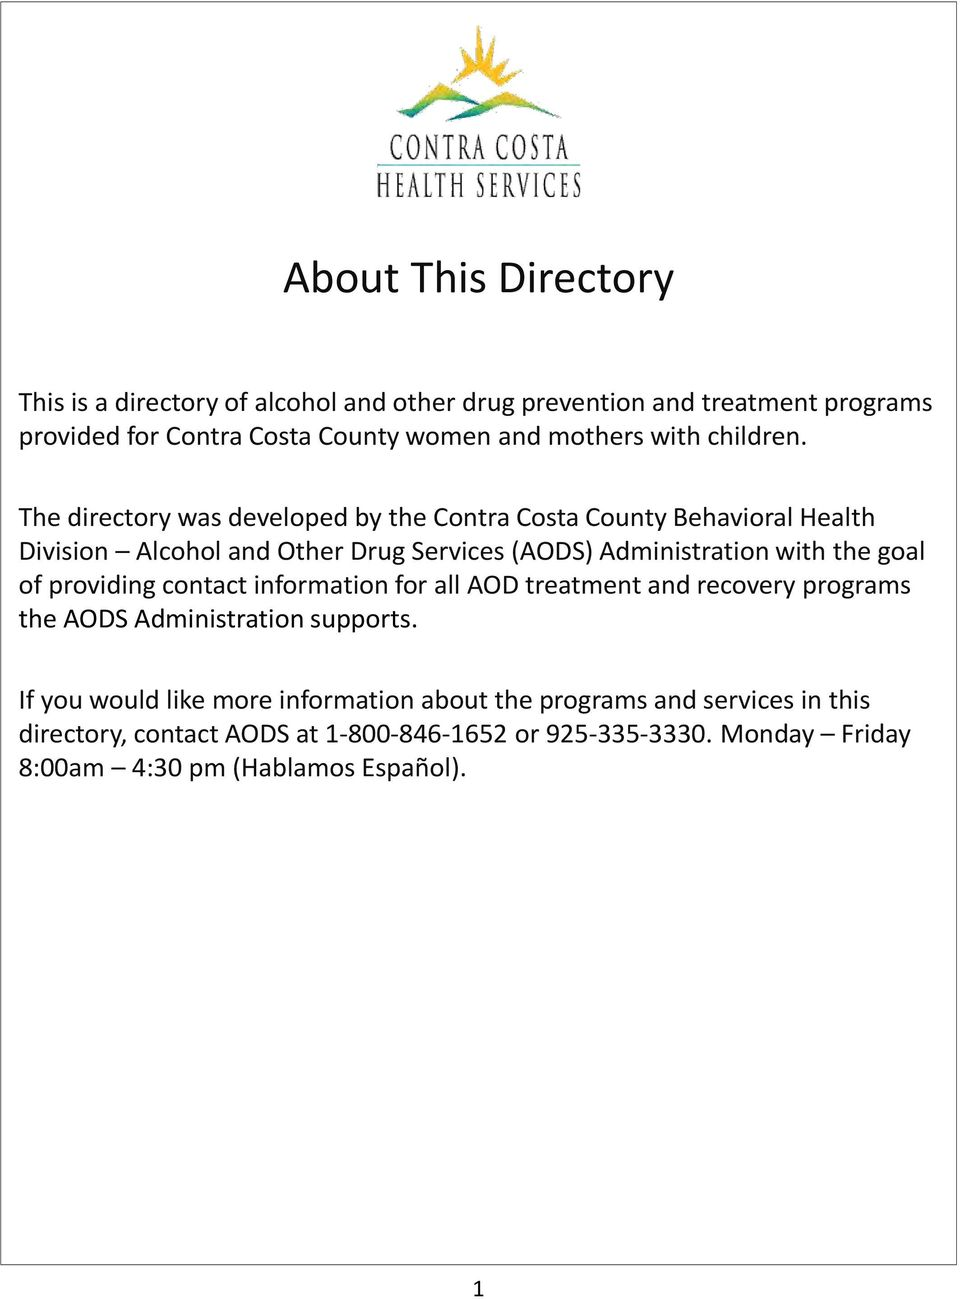 The directory was developed by the Contra Costa County Behavioral Health Division Alcohol and Other Drug Services (AODS) Administration with the goal